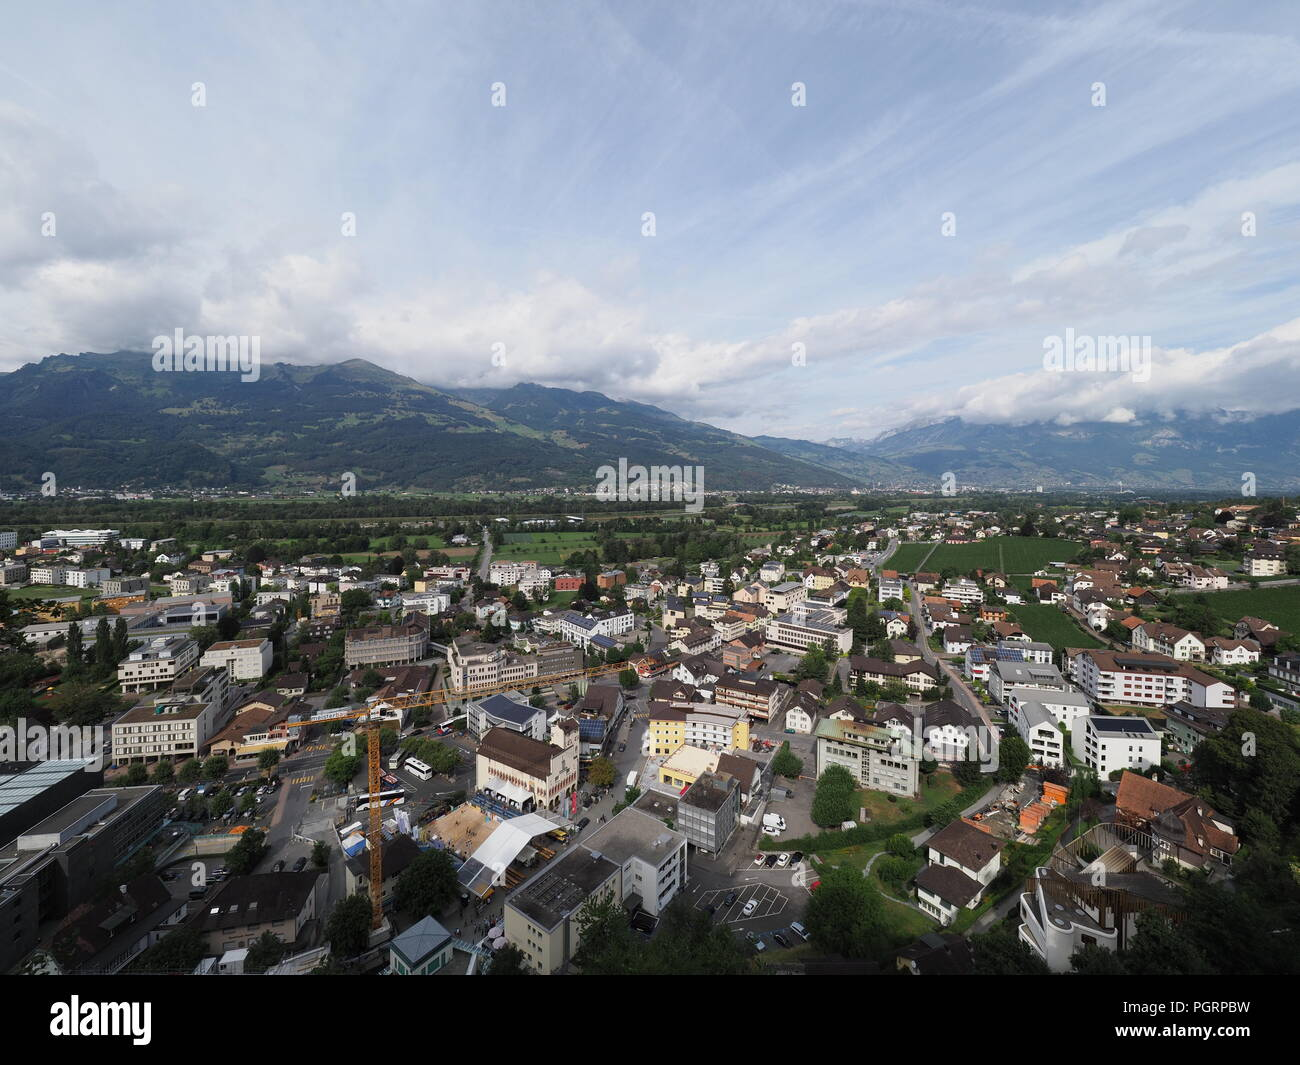 View On Cityscape Landscapes Of Small European Capital City Vaduz In Liechtenstein With Cloudy Blue Sky 2018 Warm Sunny Summer Day August